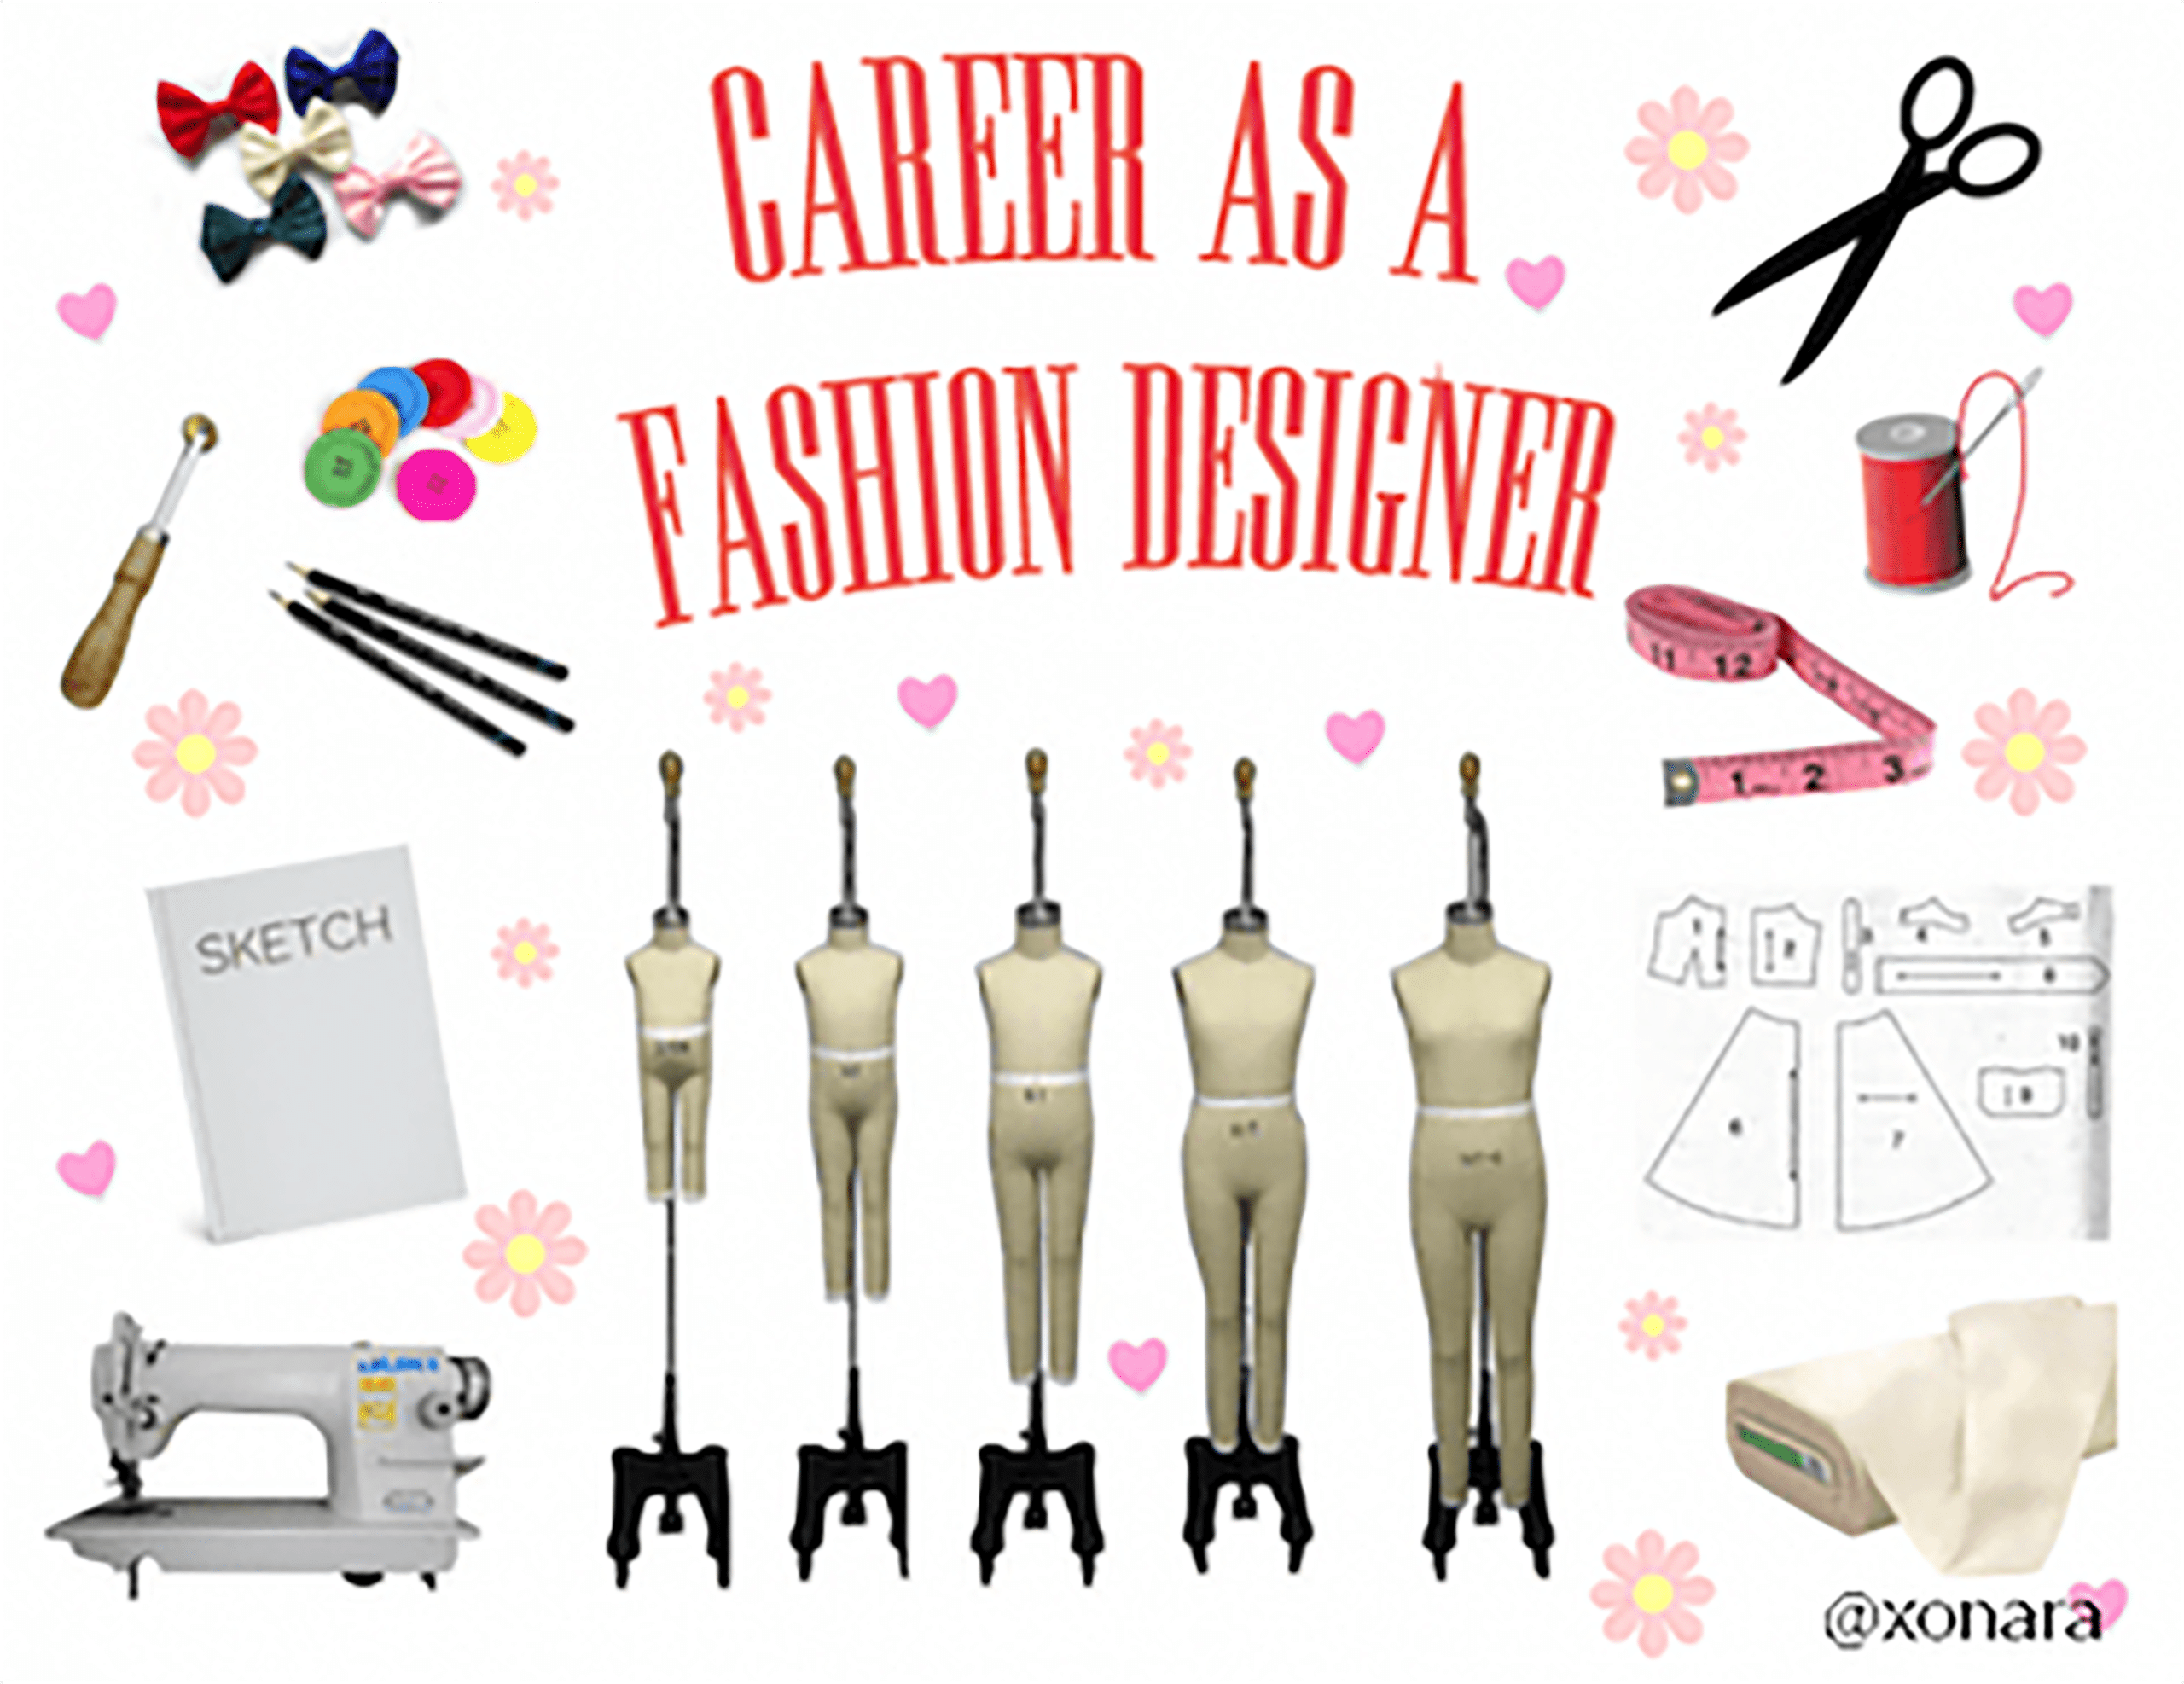 career as a fashion designer